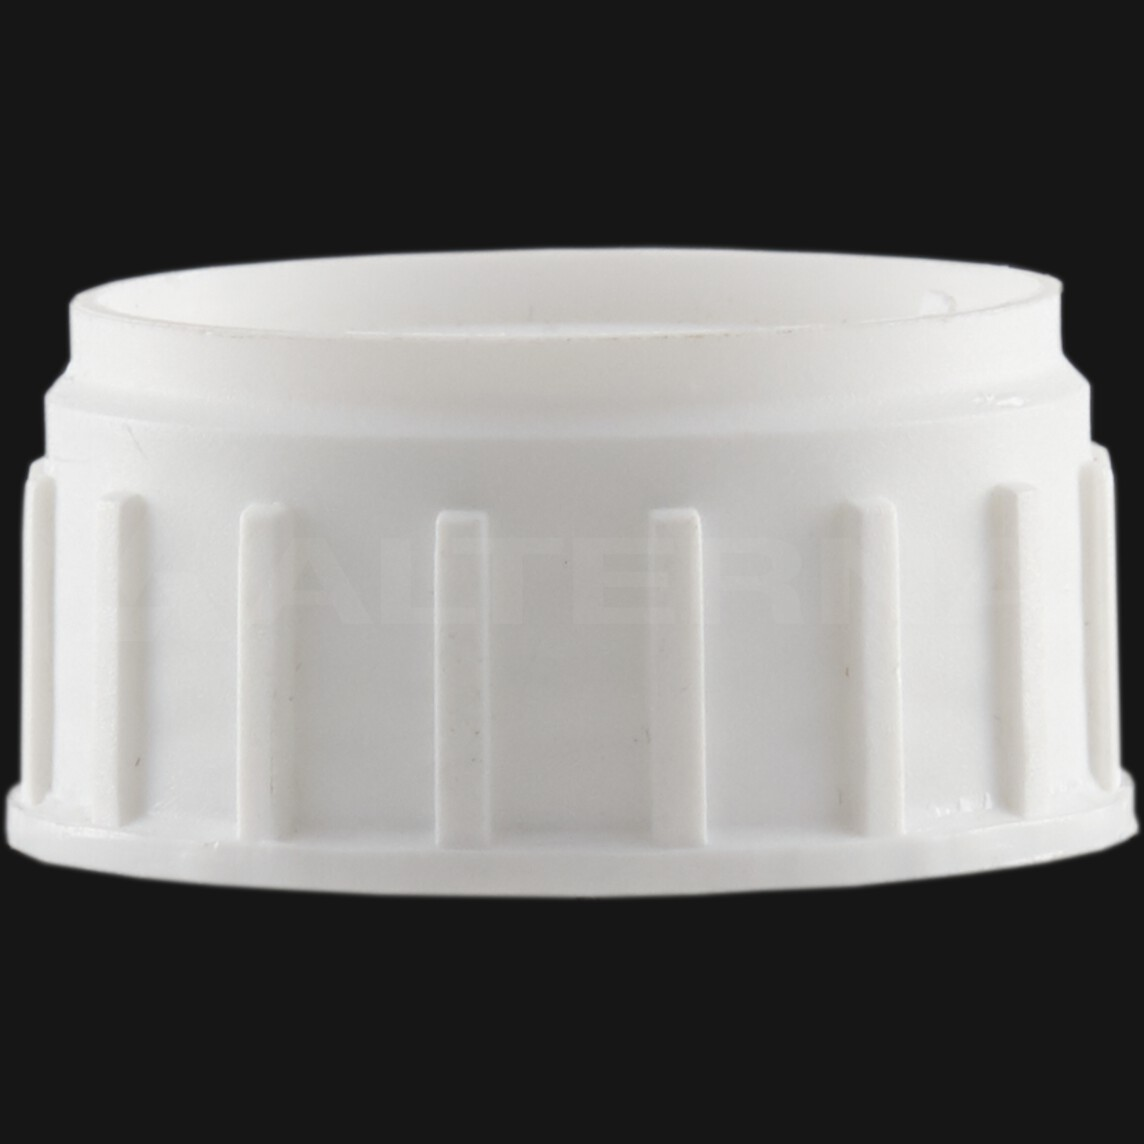 38 mm Aluminum Foil Seal Cap